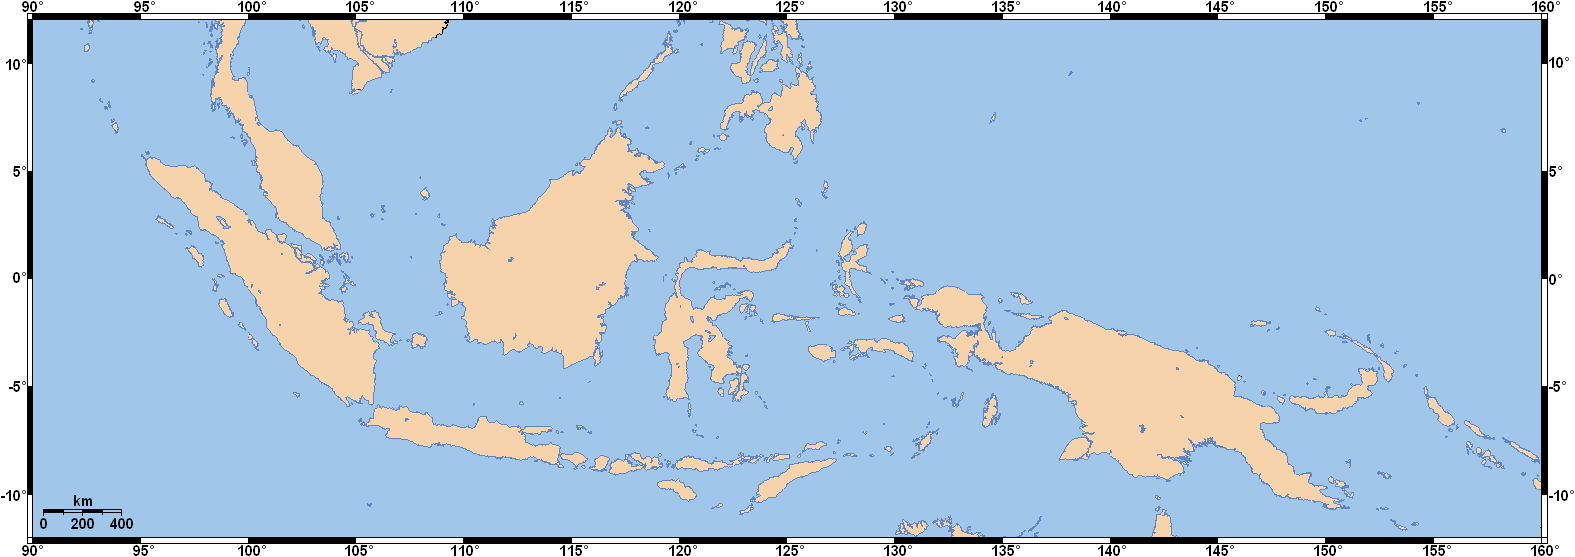 File:Indonesian islands map.png - Wikimedia Commons